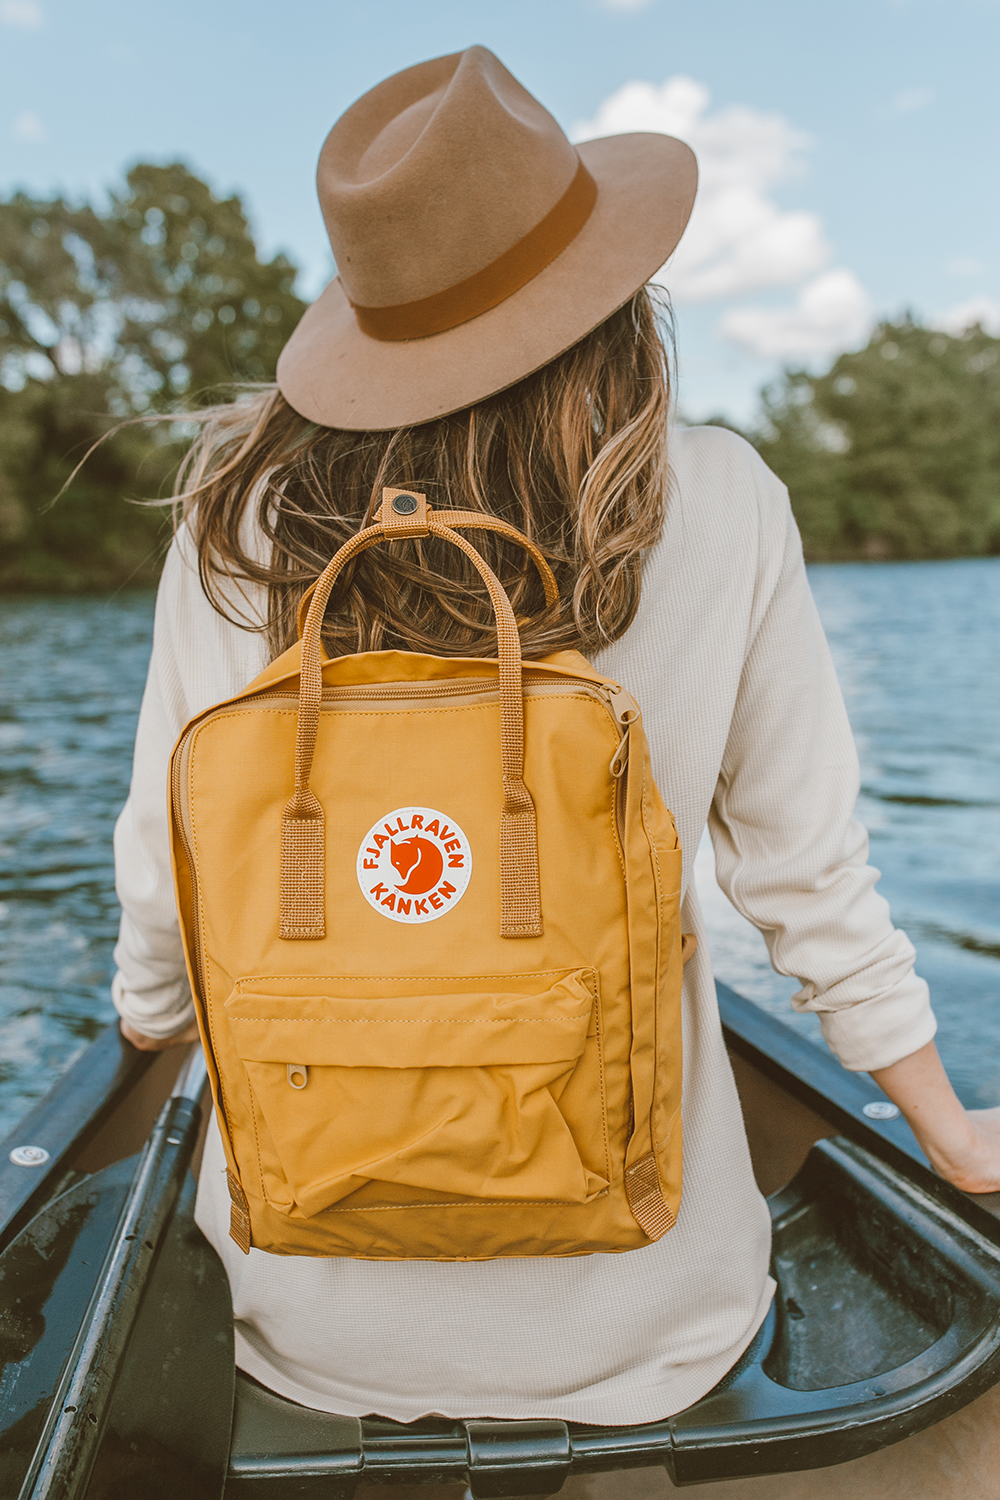 livvyland-blog-olivia-watson-canoe-lady-bird-lake-austin-texas-lifestyle-fashion-blogger-backcountry-fjallraven-kanen-ochre-mustard-yellow-backpack